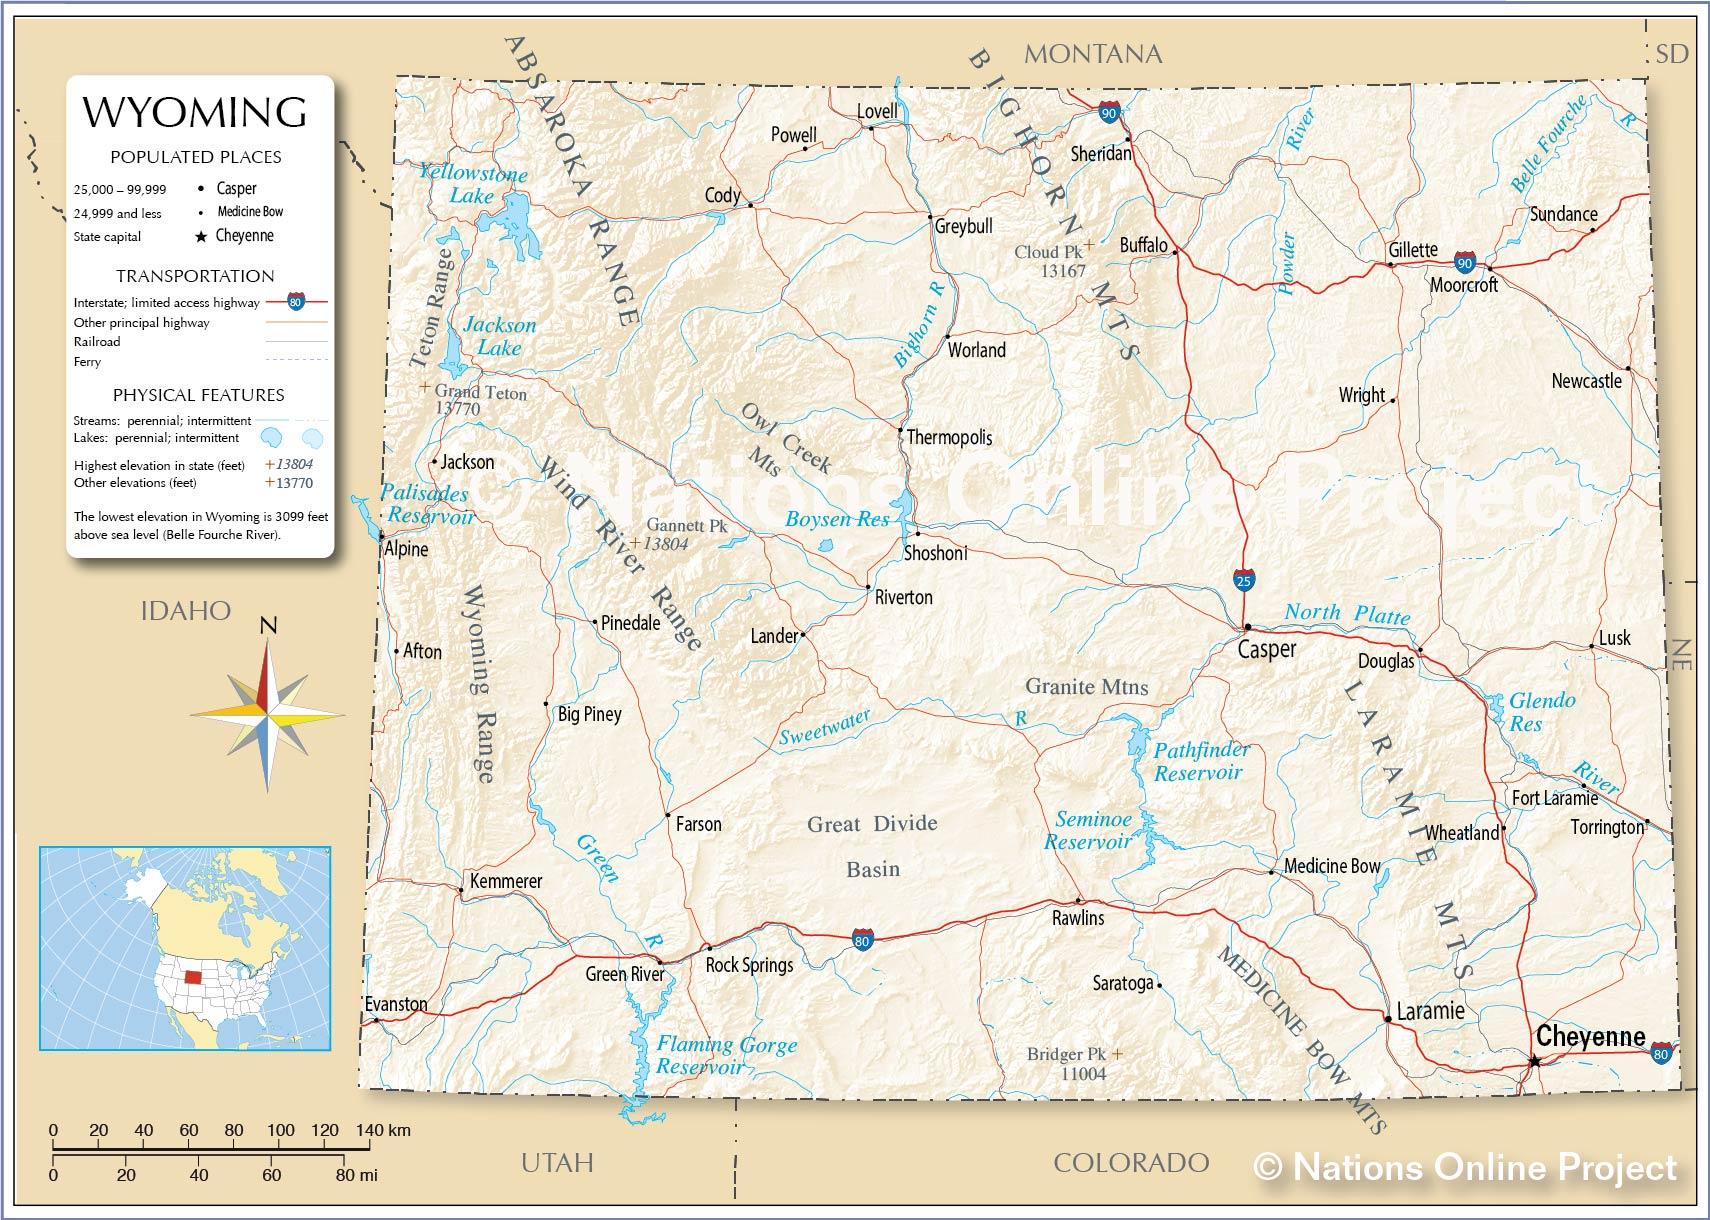 Reference Map of Wyoming